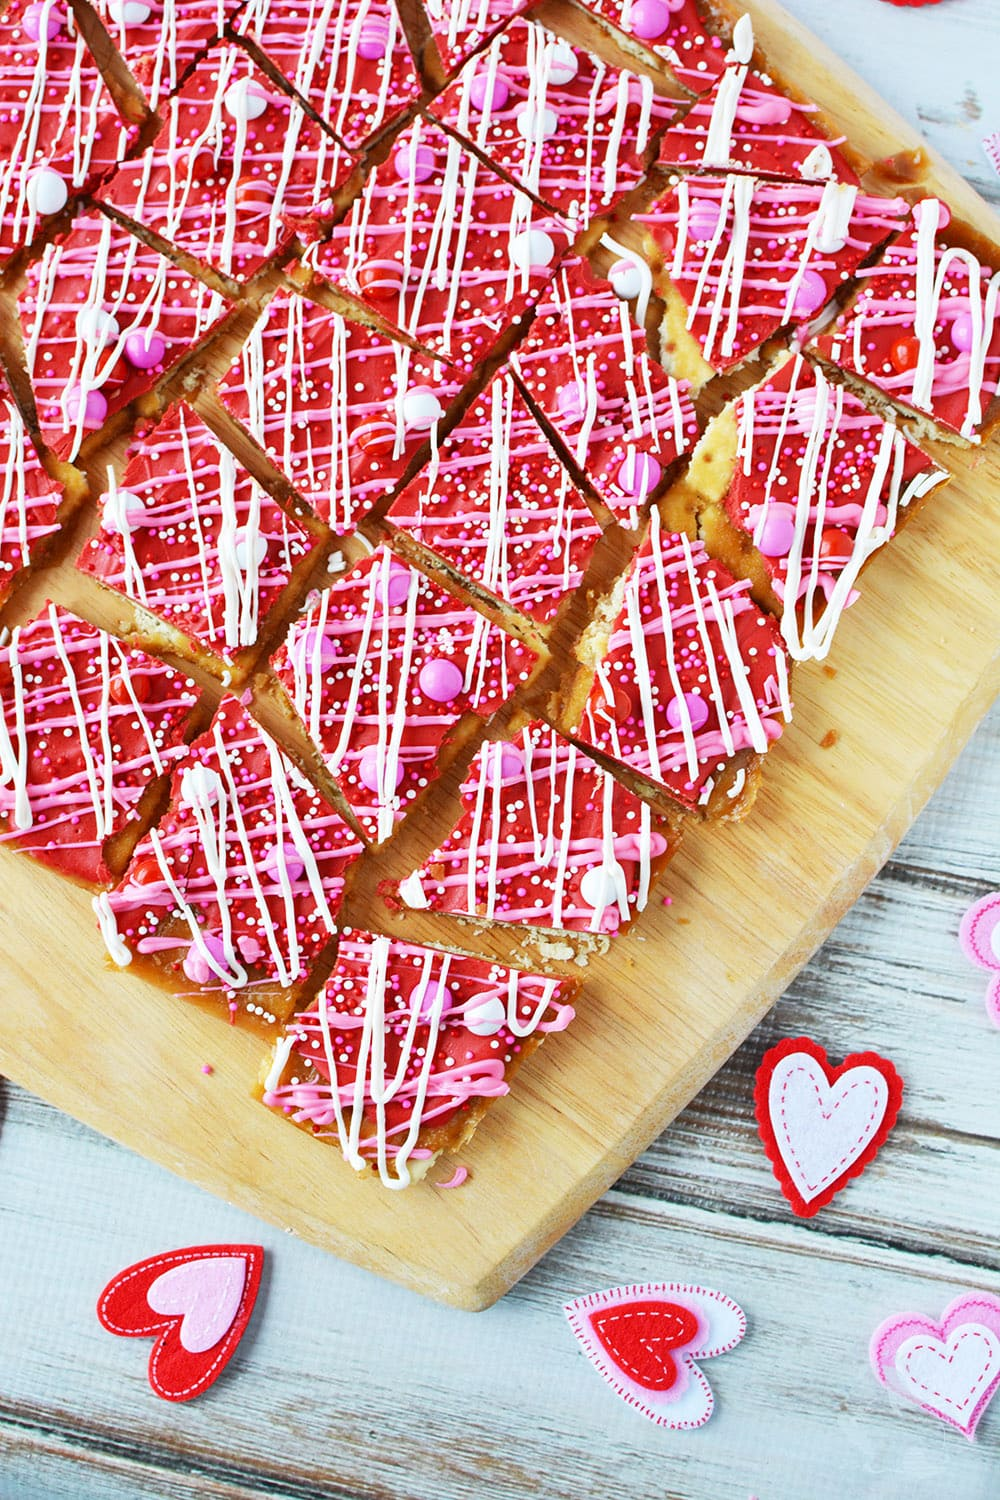 Cracker toffee candy on a board with Valentine's day decorations.